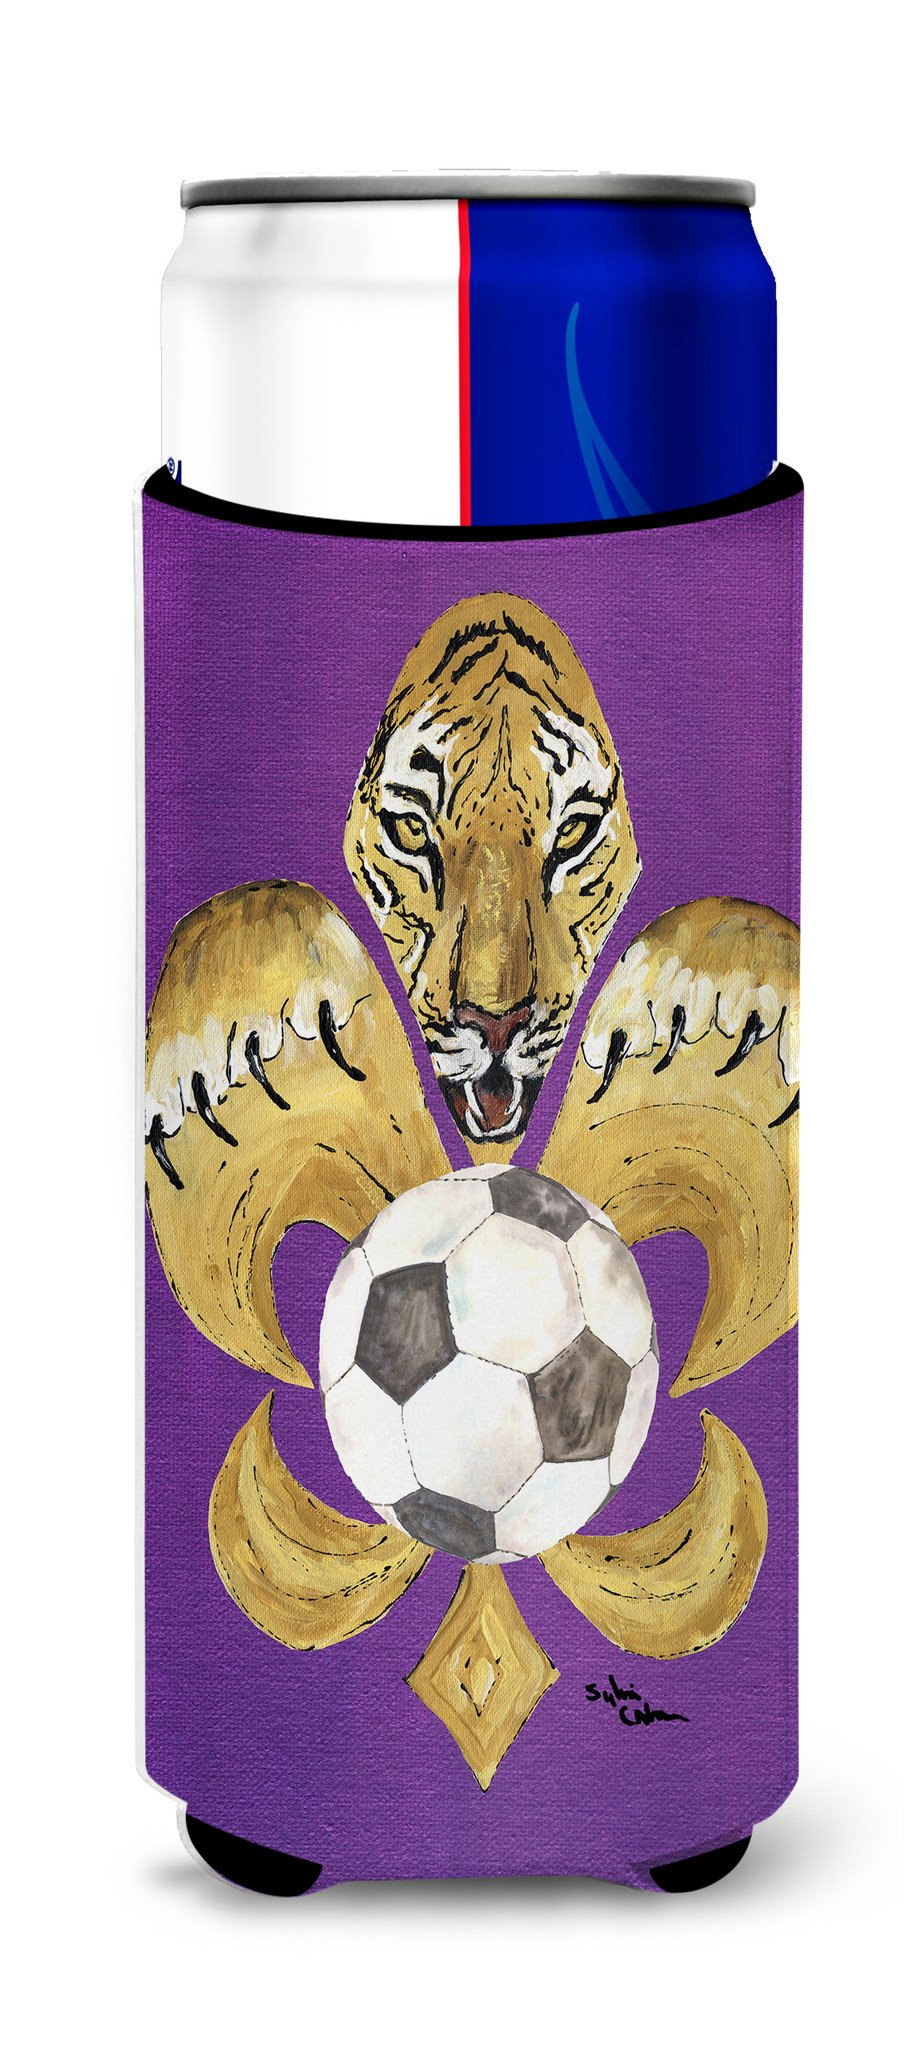 Tiger Fleur de lis Soccer Ultra Beverage Insulators for slim cans 8477MUK by Caroline's Treasures